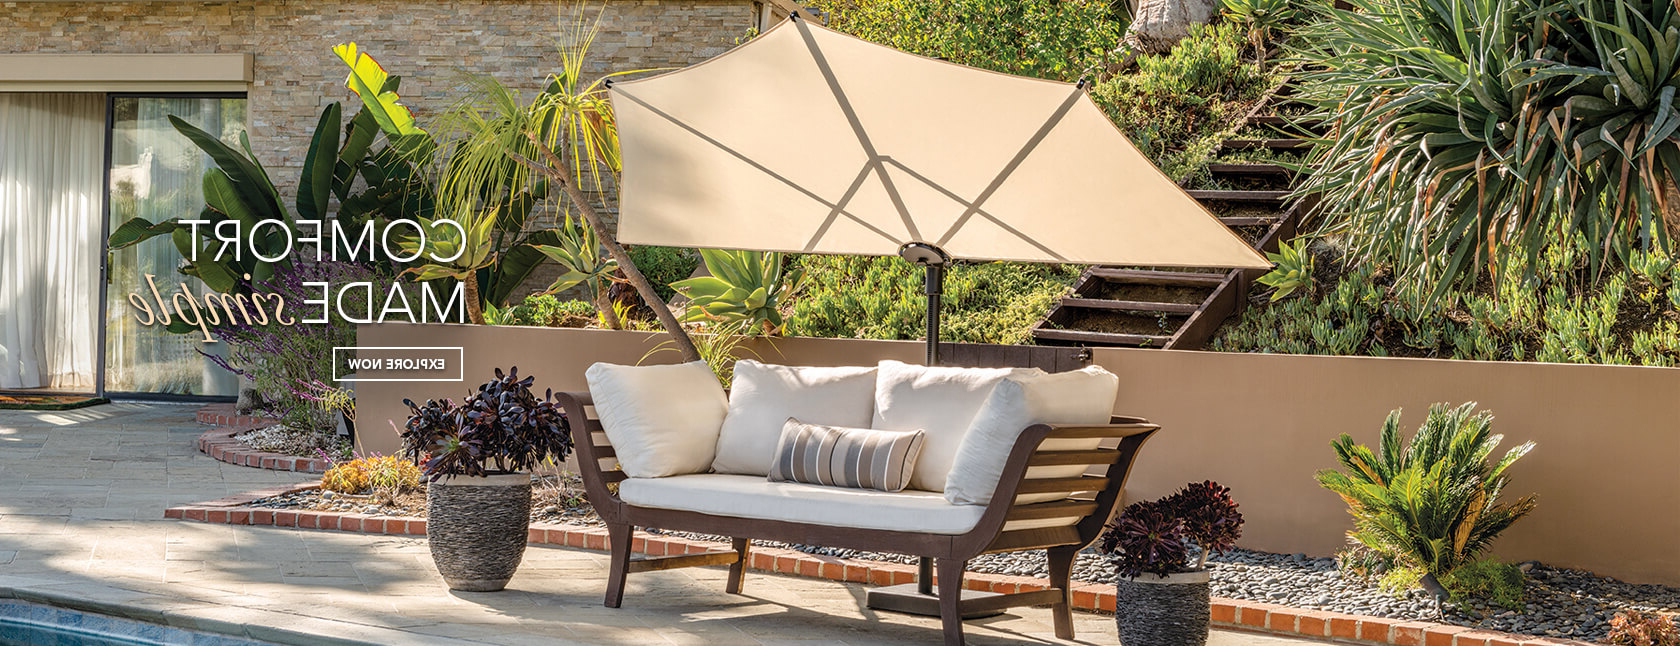 Patio Umbrellas, Patio Shades, Outdoor Umbrella – Simplyshade With Regard To Fashionable Lanai Market Umbrellas (View 13 of 20)